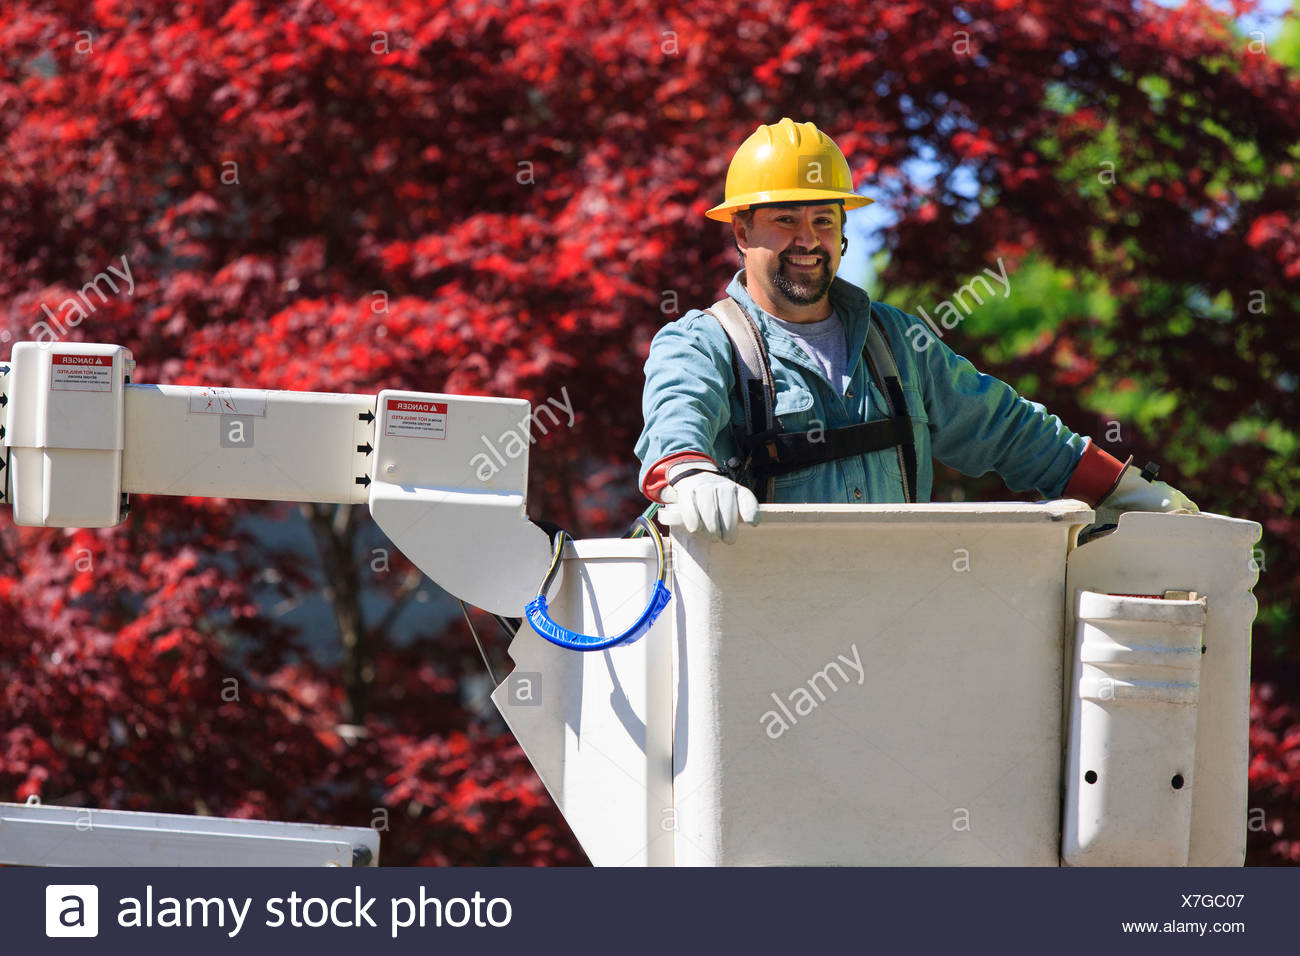 Power engineer in lift bucket wearing a safety harness and insulated gloves, Braintree, Massachusetts, USA - Stock Image